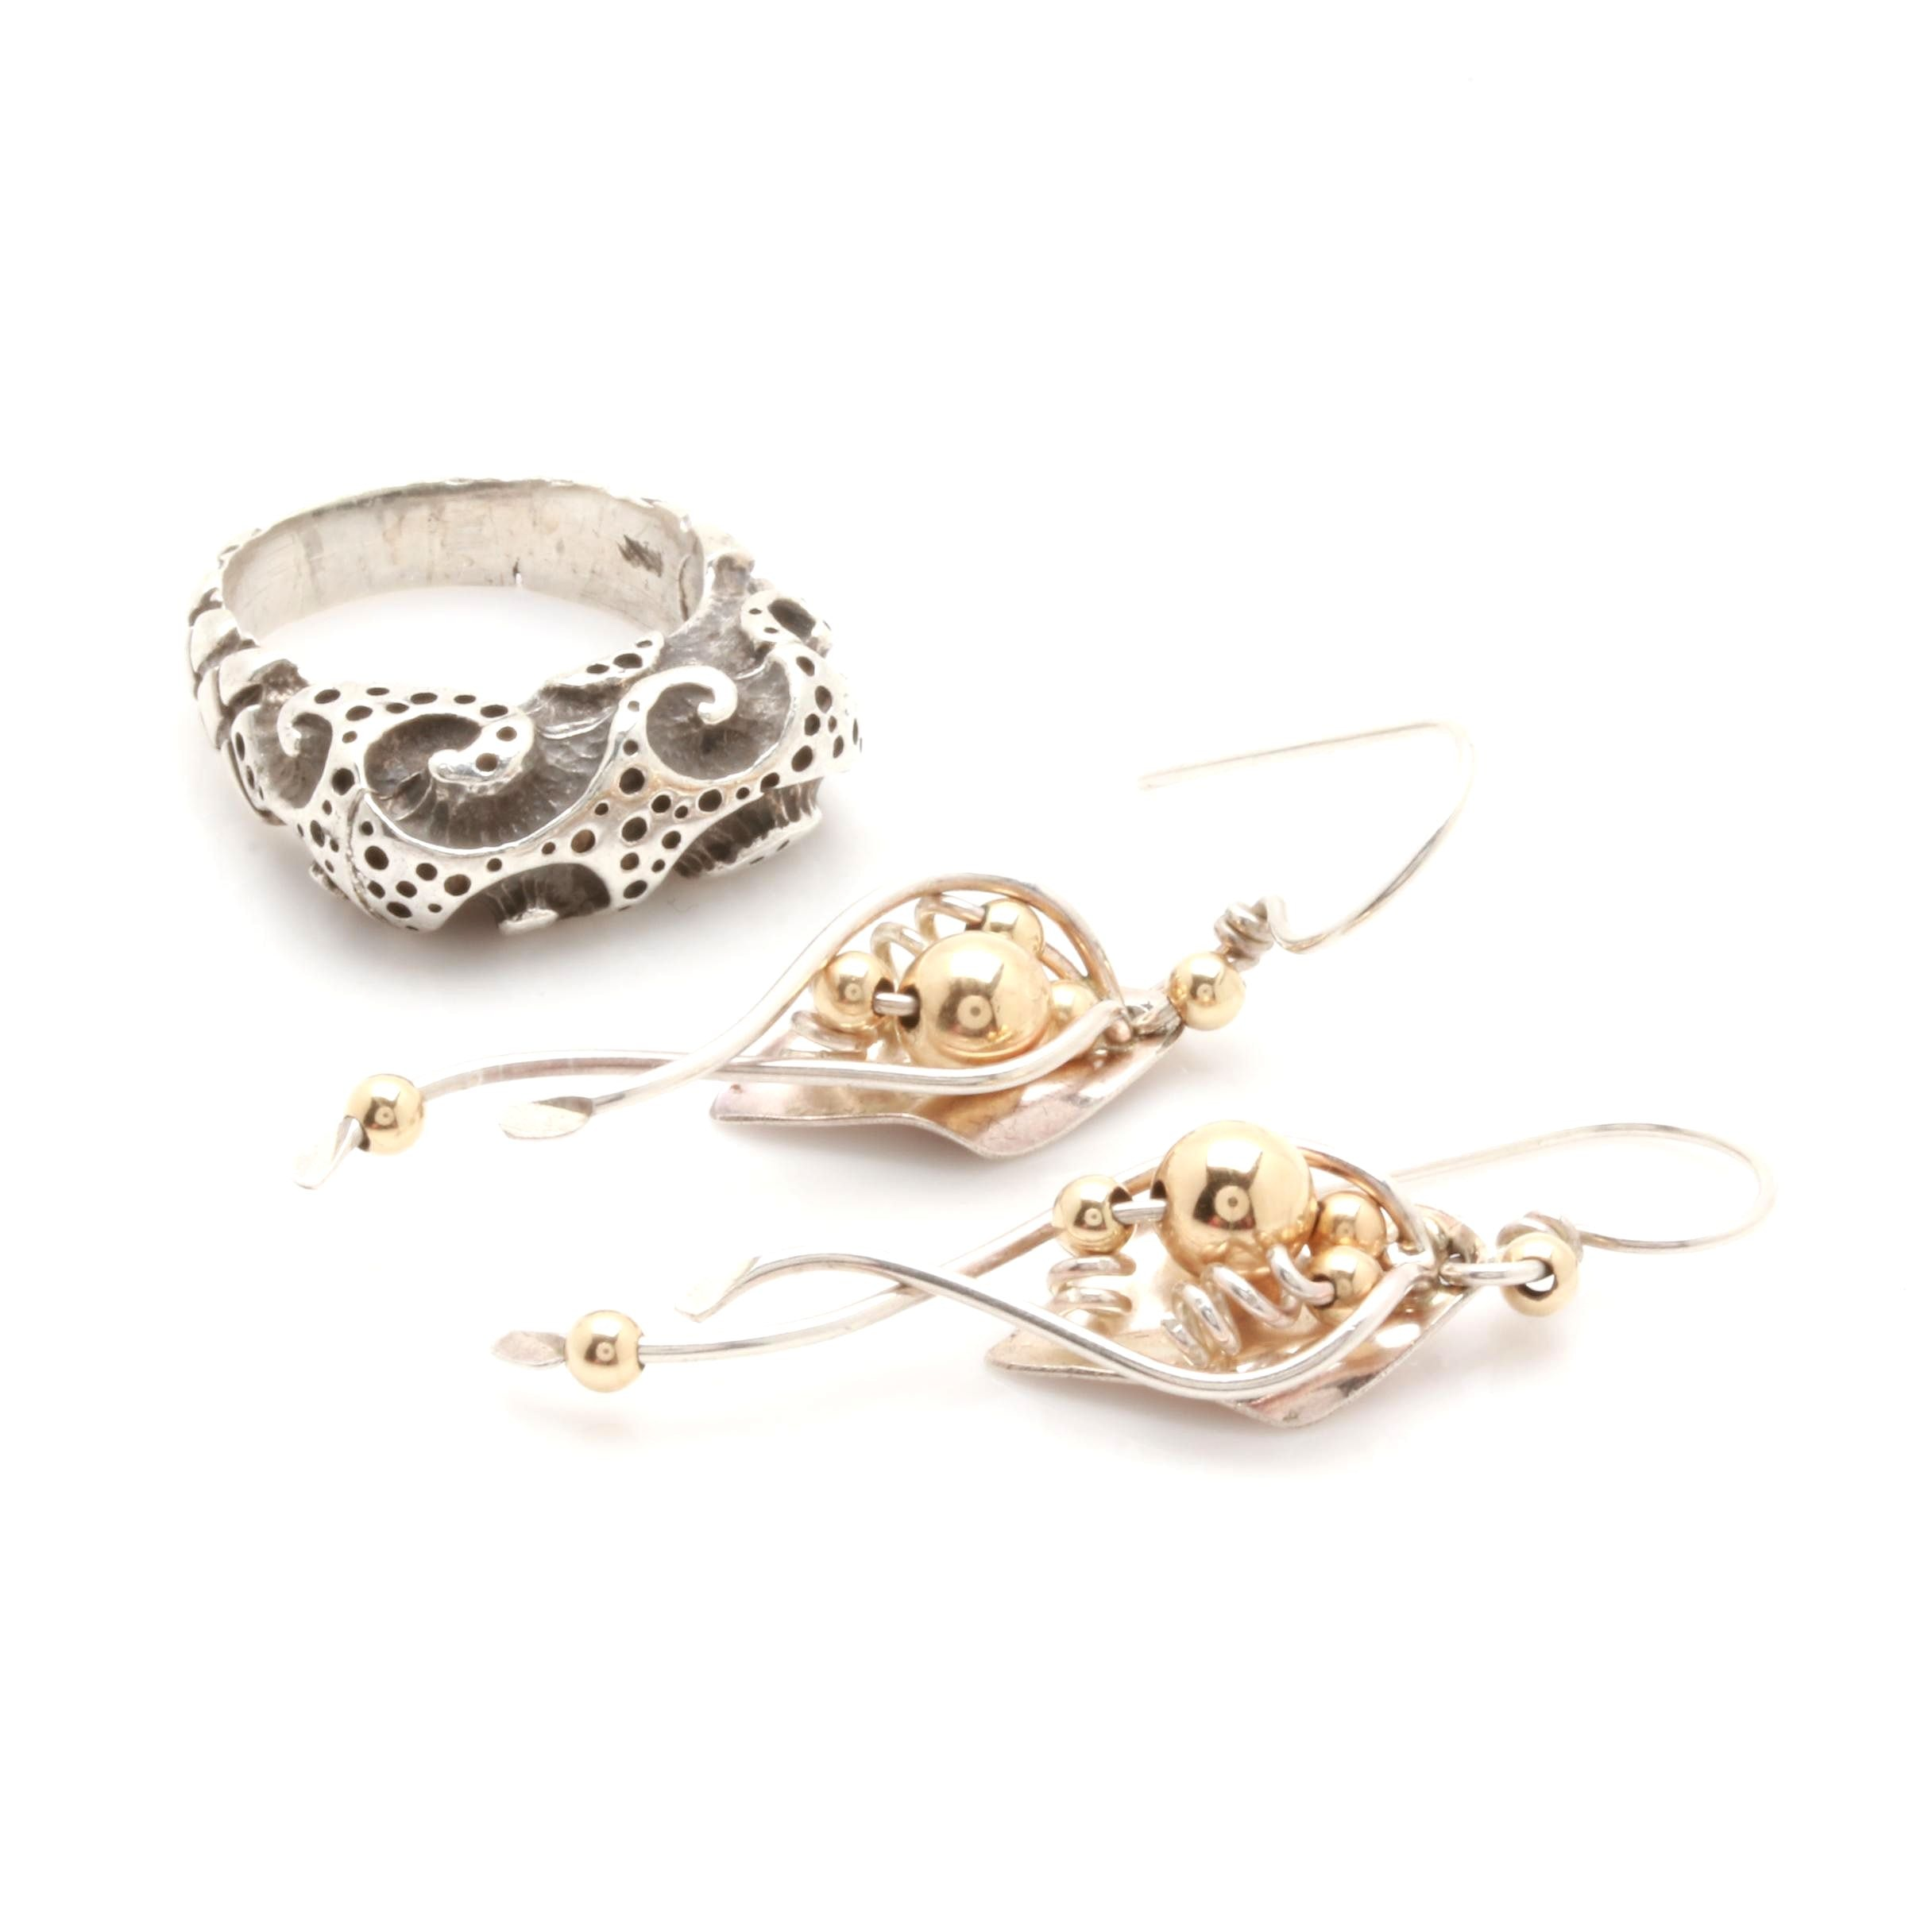 Sterling Silver Jewelry Selection Featuring Dian Malouf and Ladda Bihler